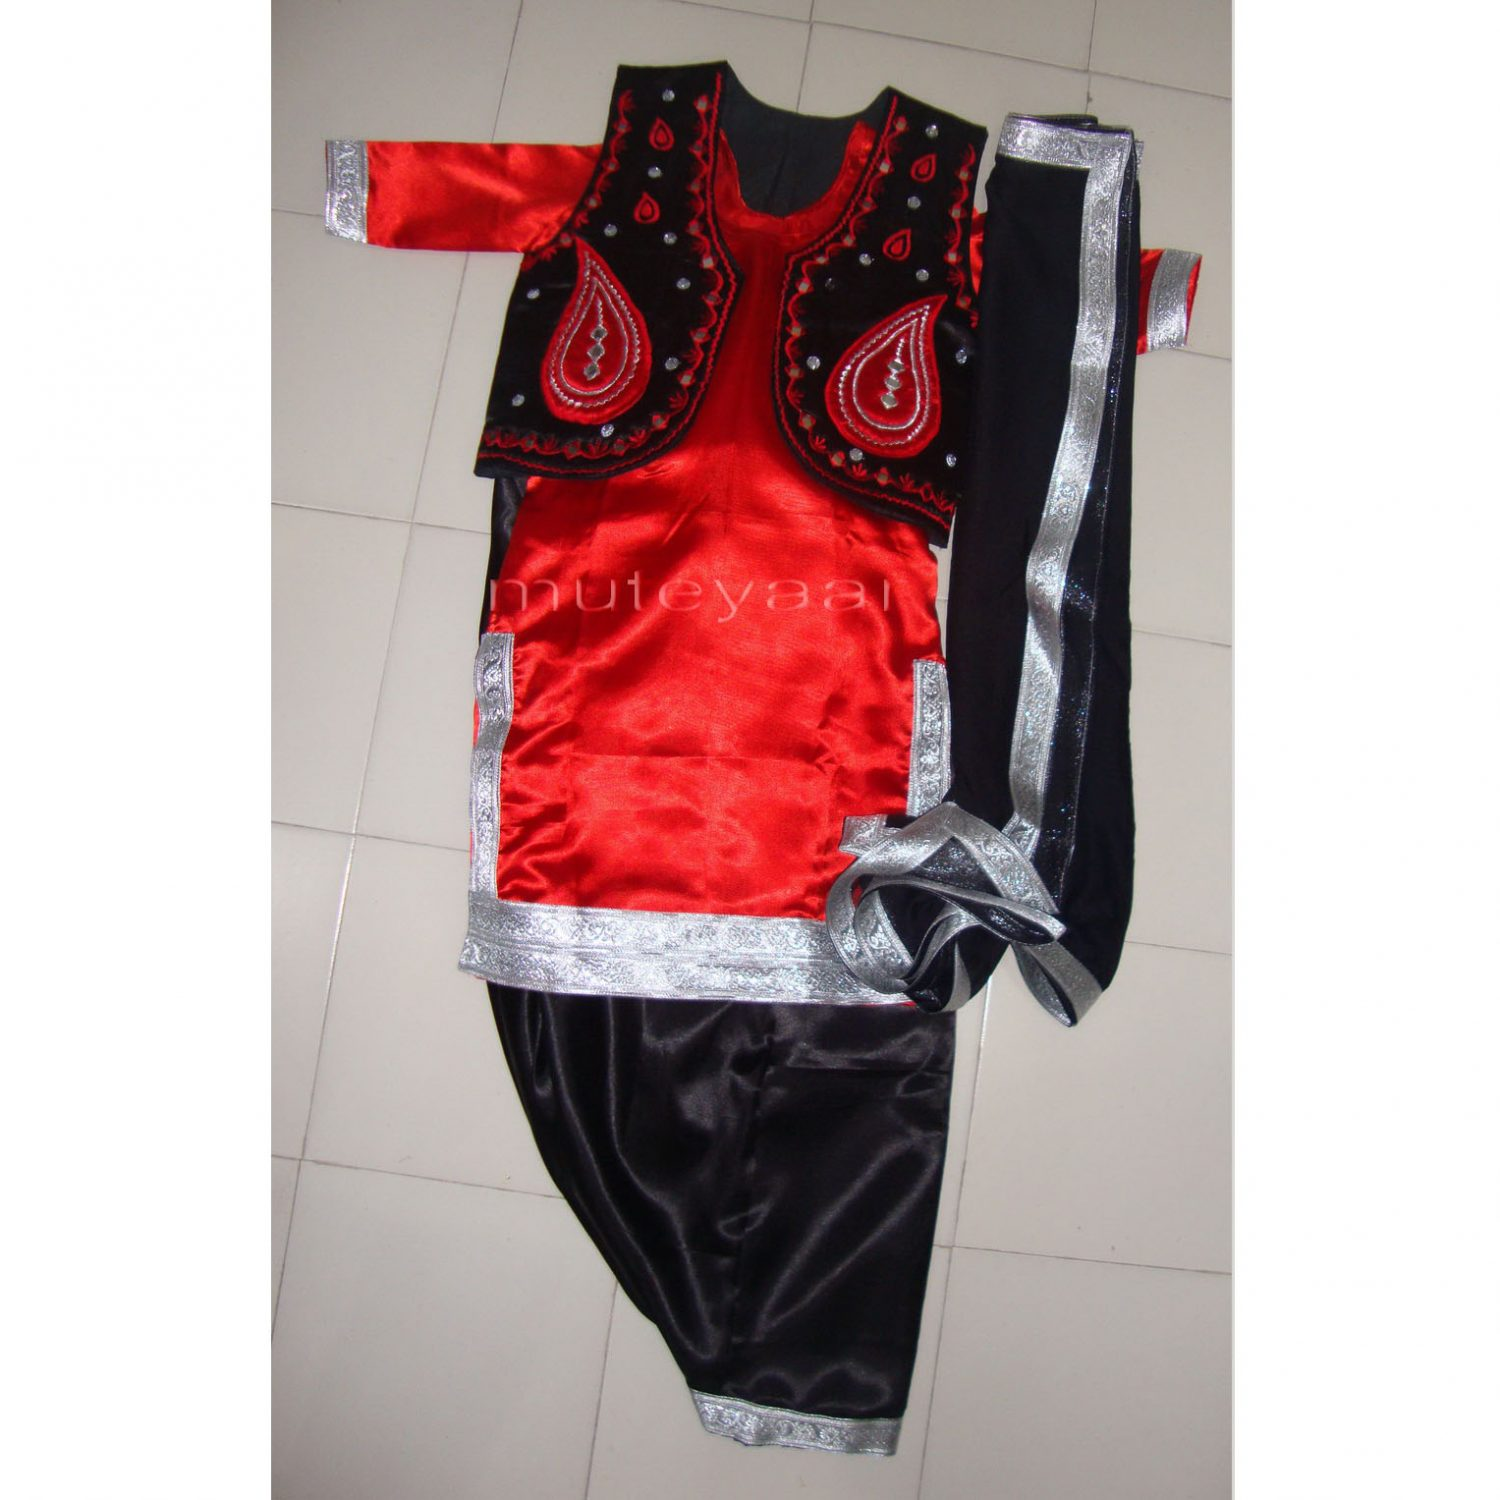 Black Red Girl's Bhangra Costume with separate jacket / vest 1